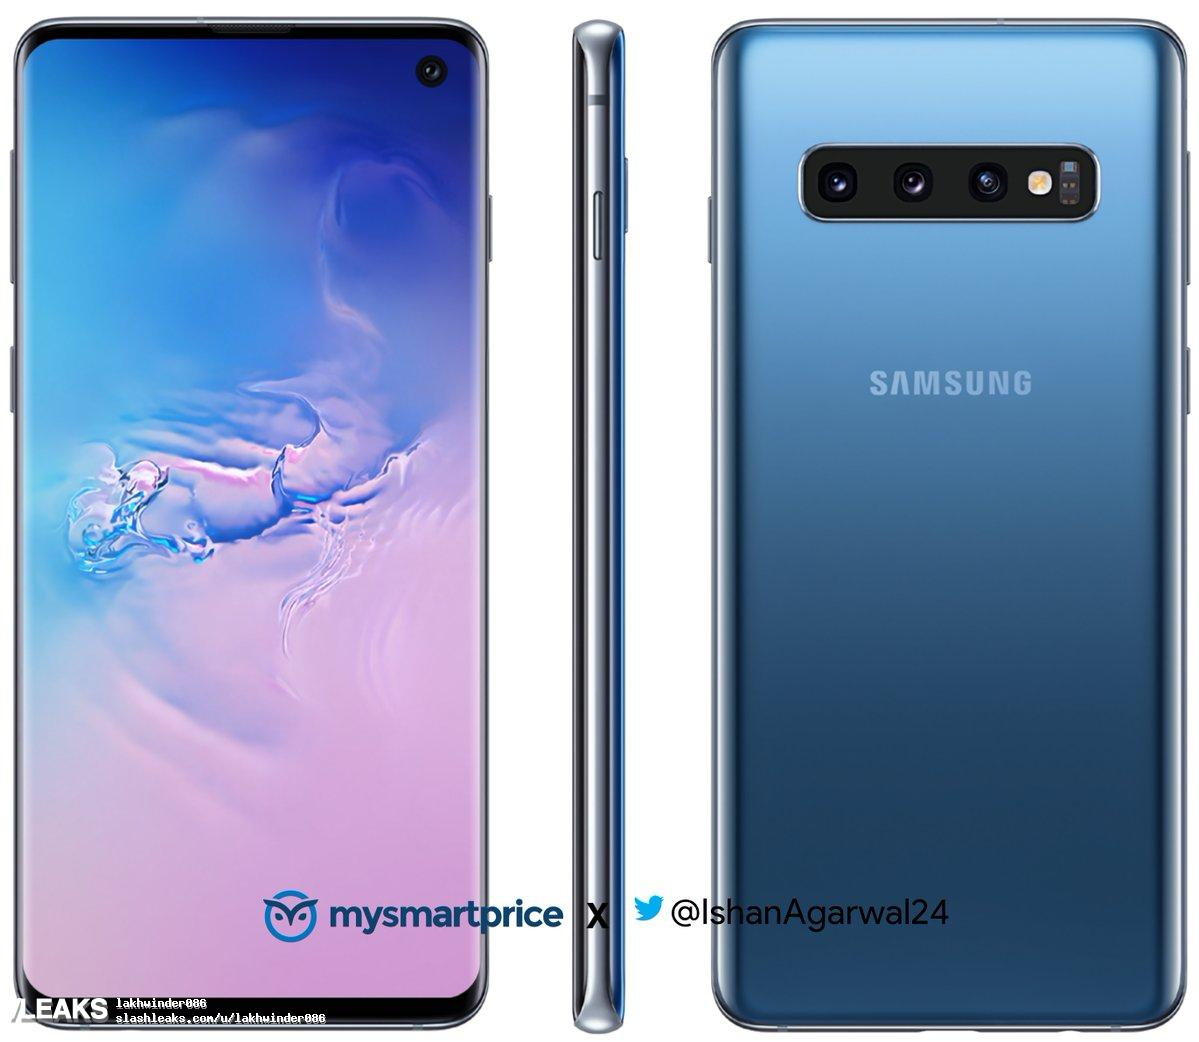 new-blue-colour-of-the-samsung-galaxy-s10-and-galaxy-s10e-720.jpg